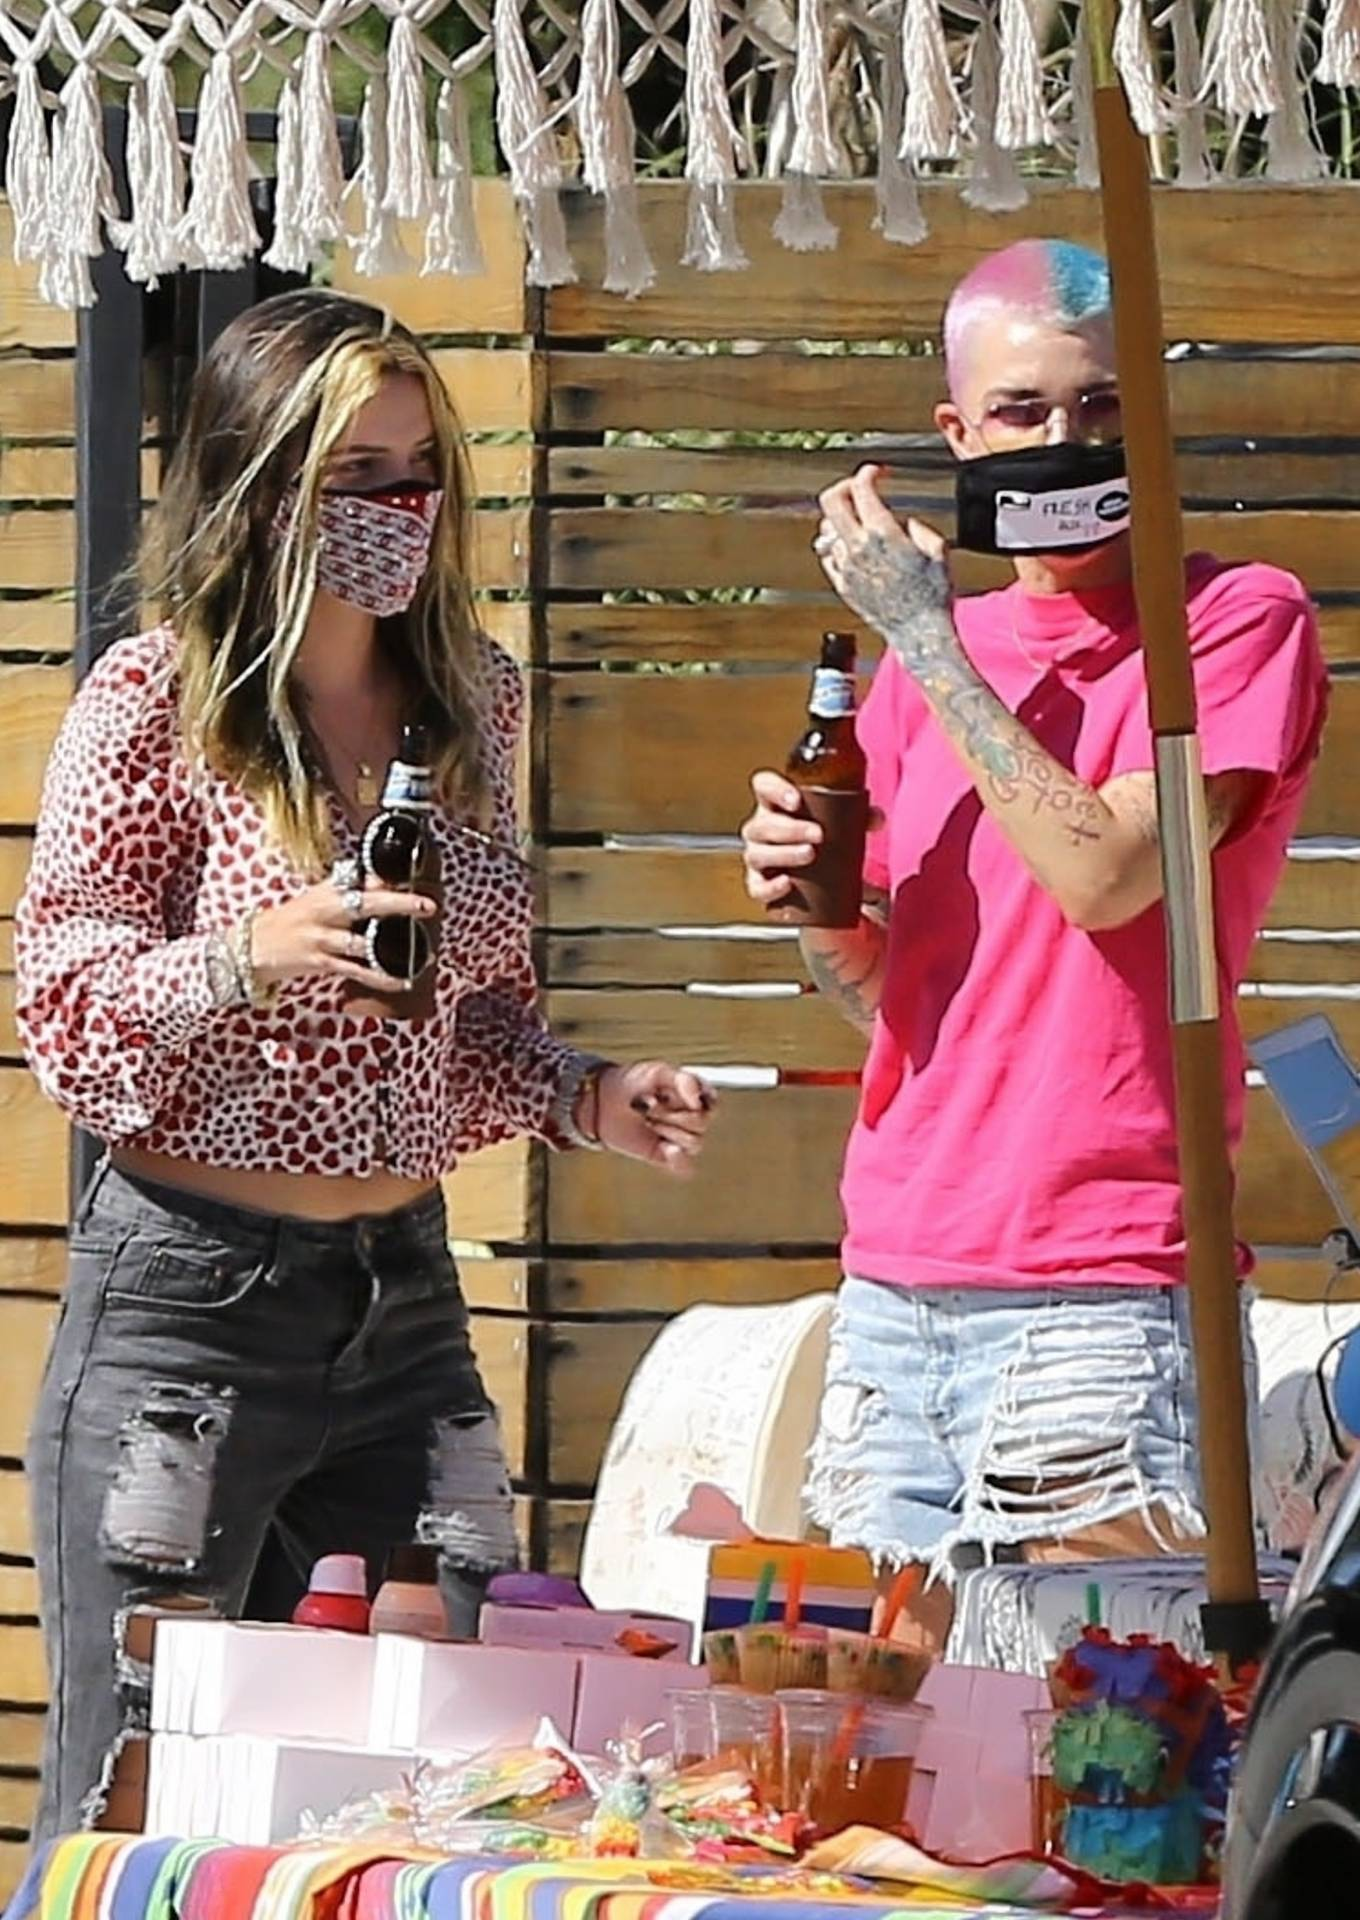 Bella Thorne and Ruby Rose - Attends a birthday party in Studio City